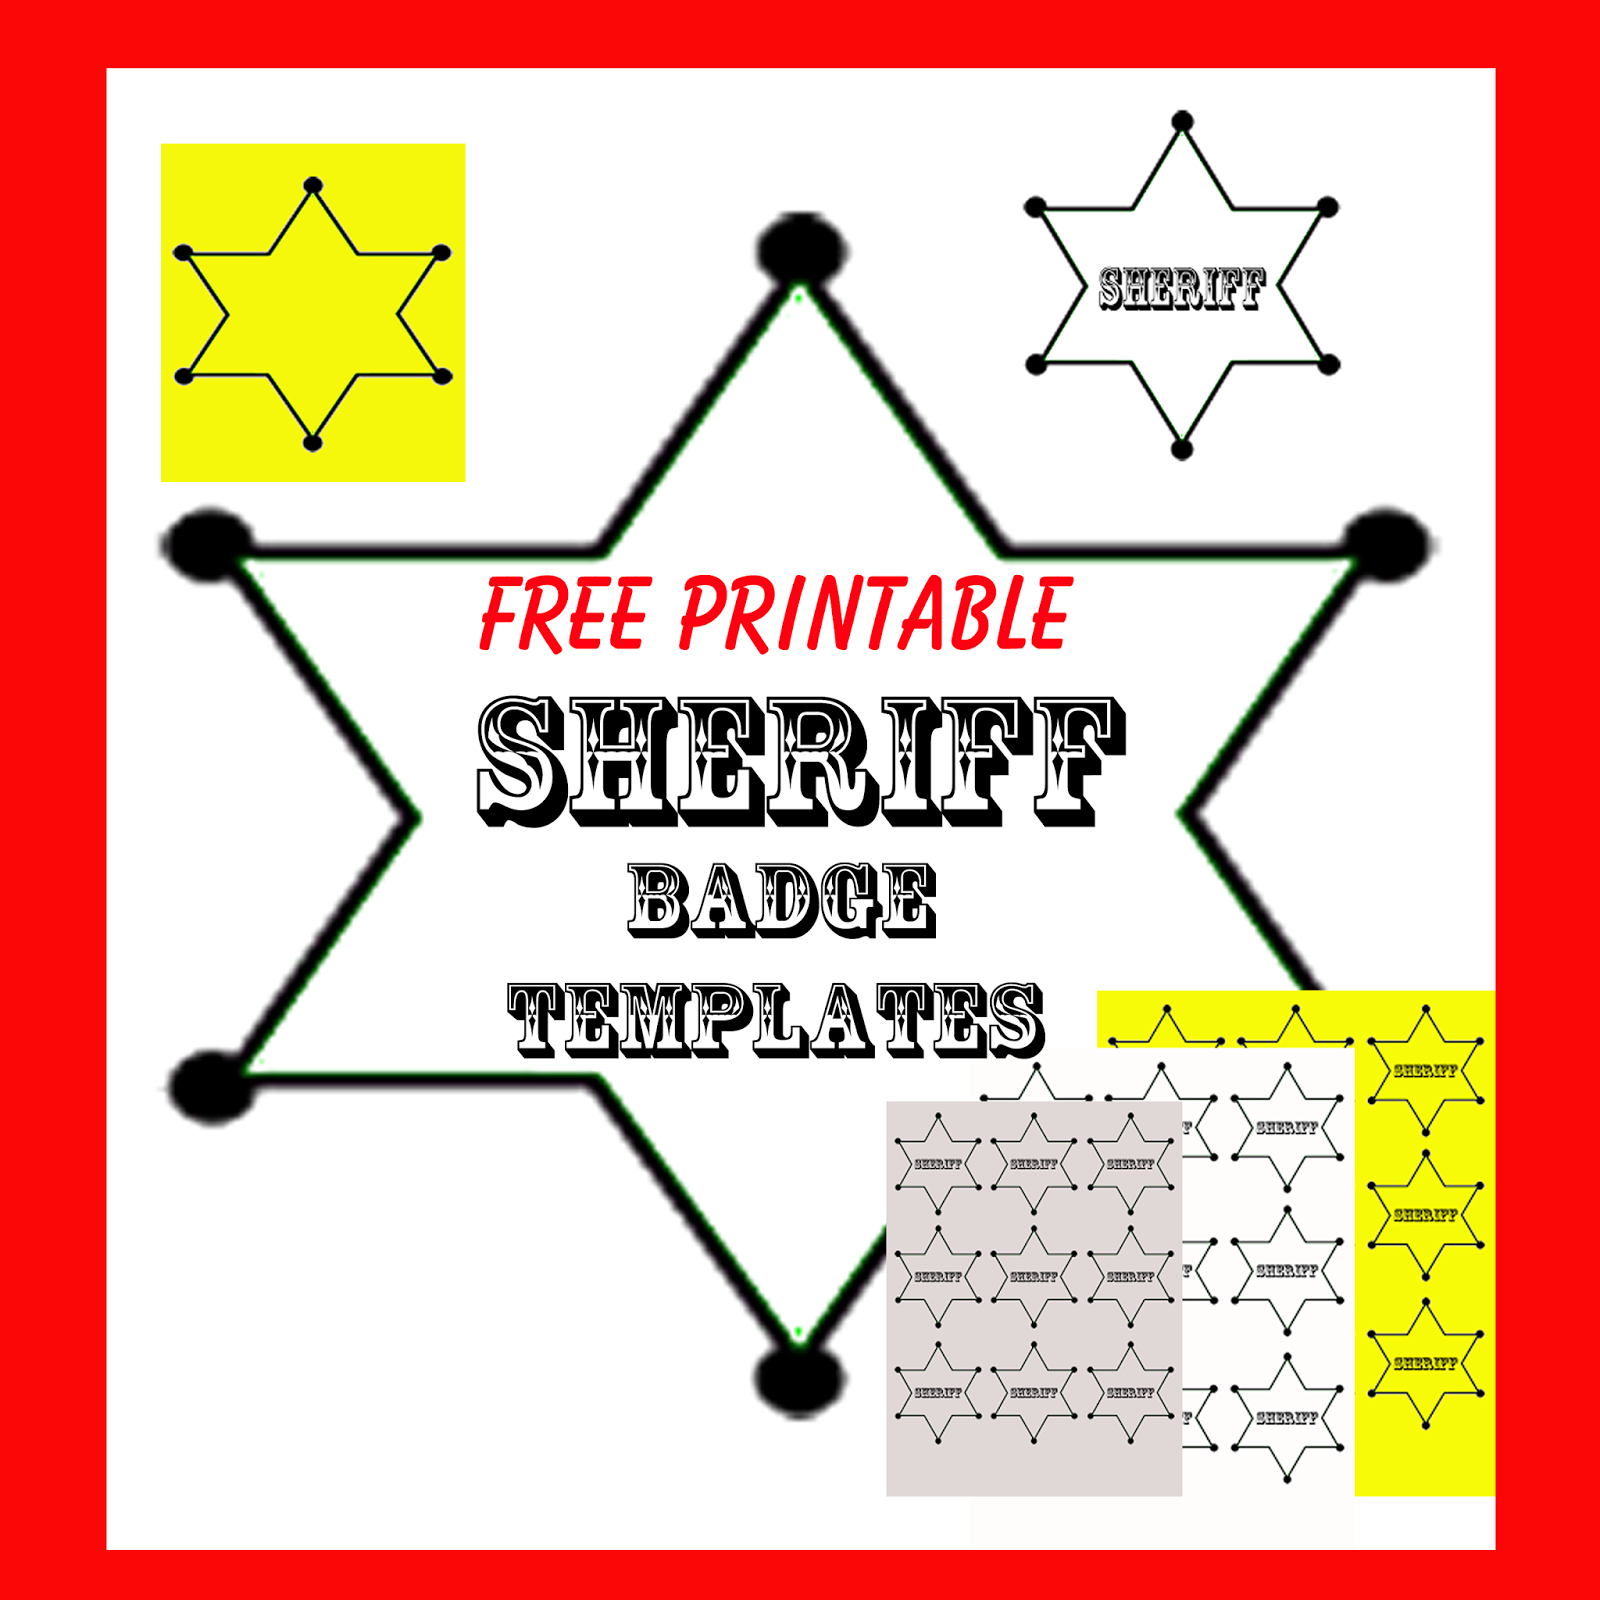 image regarding Printable Badges referred to as Crafts And Creations By way of Dancing Cowgirl Structure: Free of charge